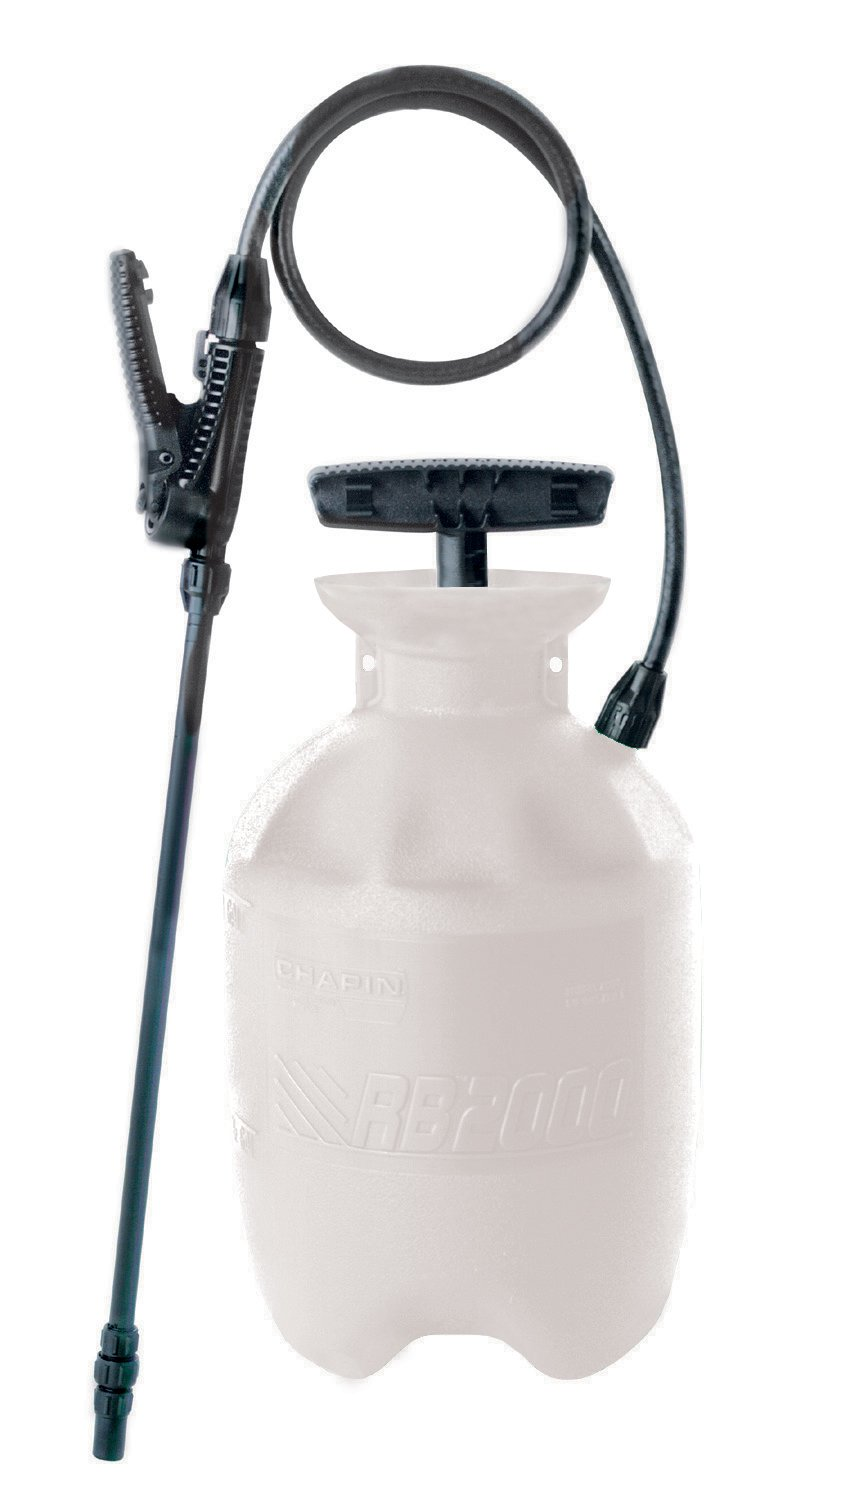 Chapin 20010 1-Gallon SureSpray Sprayer For Fertilizer, Herbicides and Pesticides, 1-Gallon (1 Sprayer/Package)